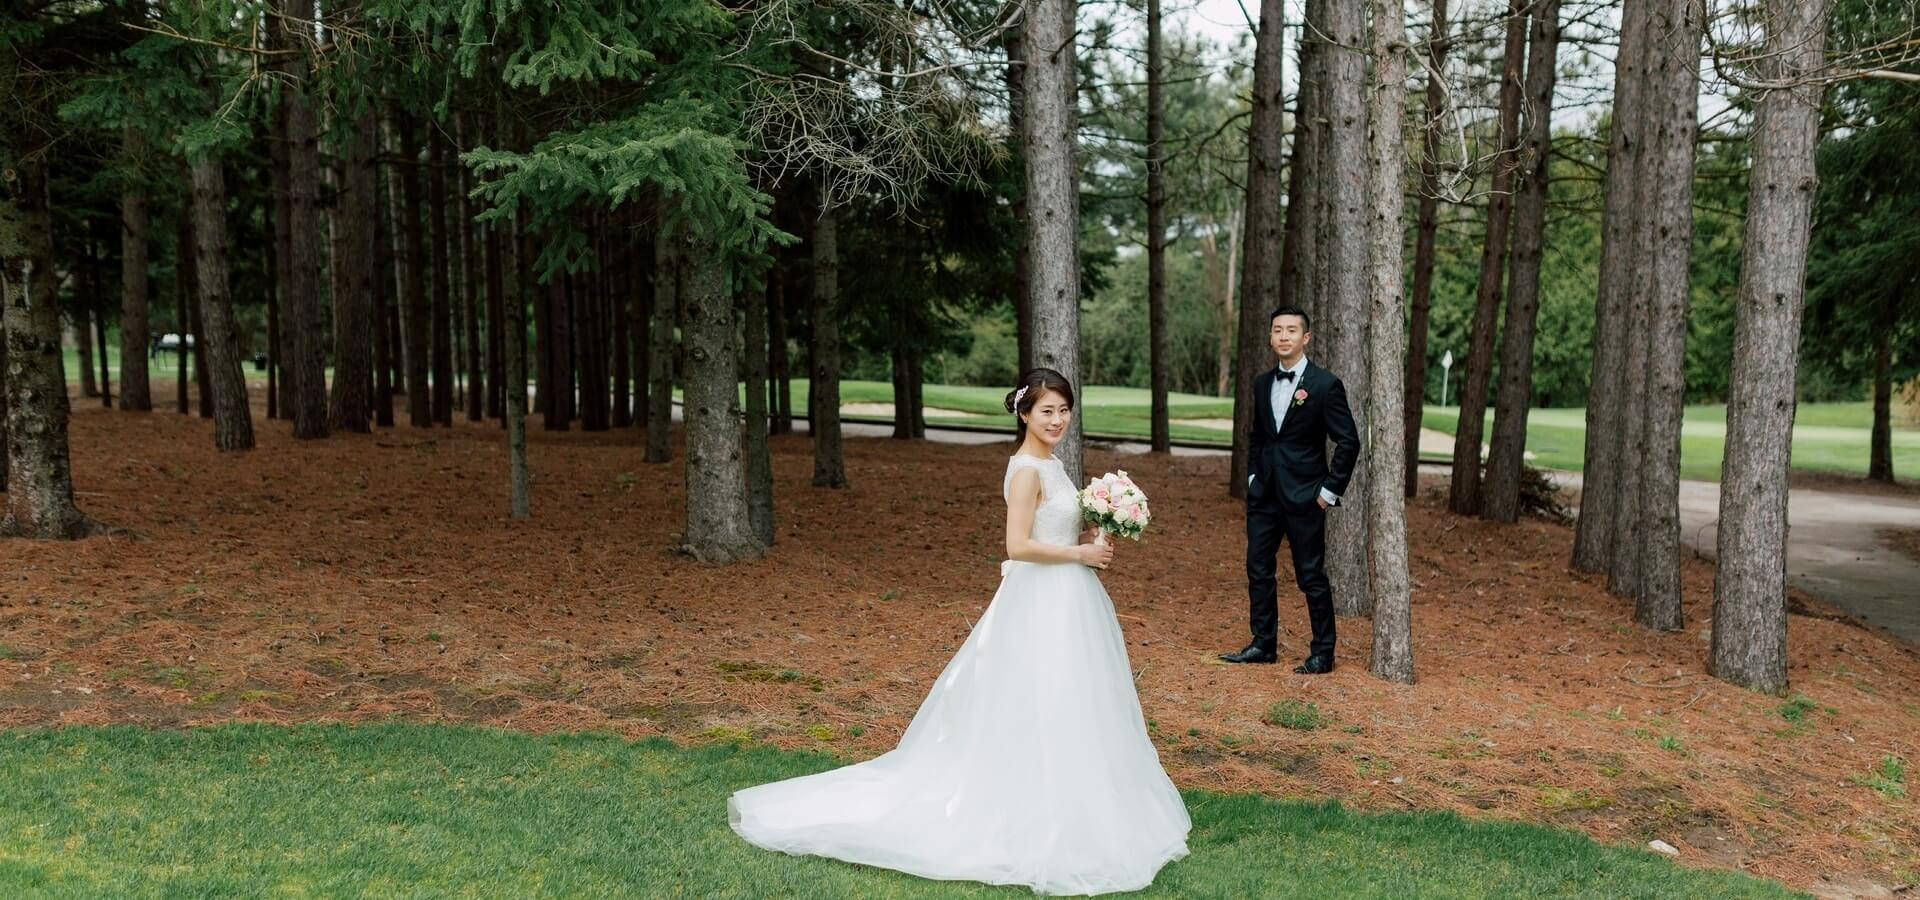 Hero image for Janice and Joshua's Cultural Wedding at King Valley Golf Club